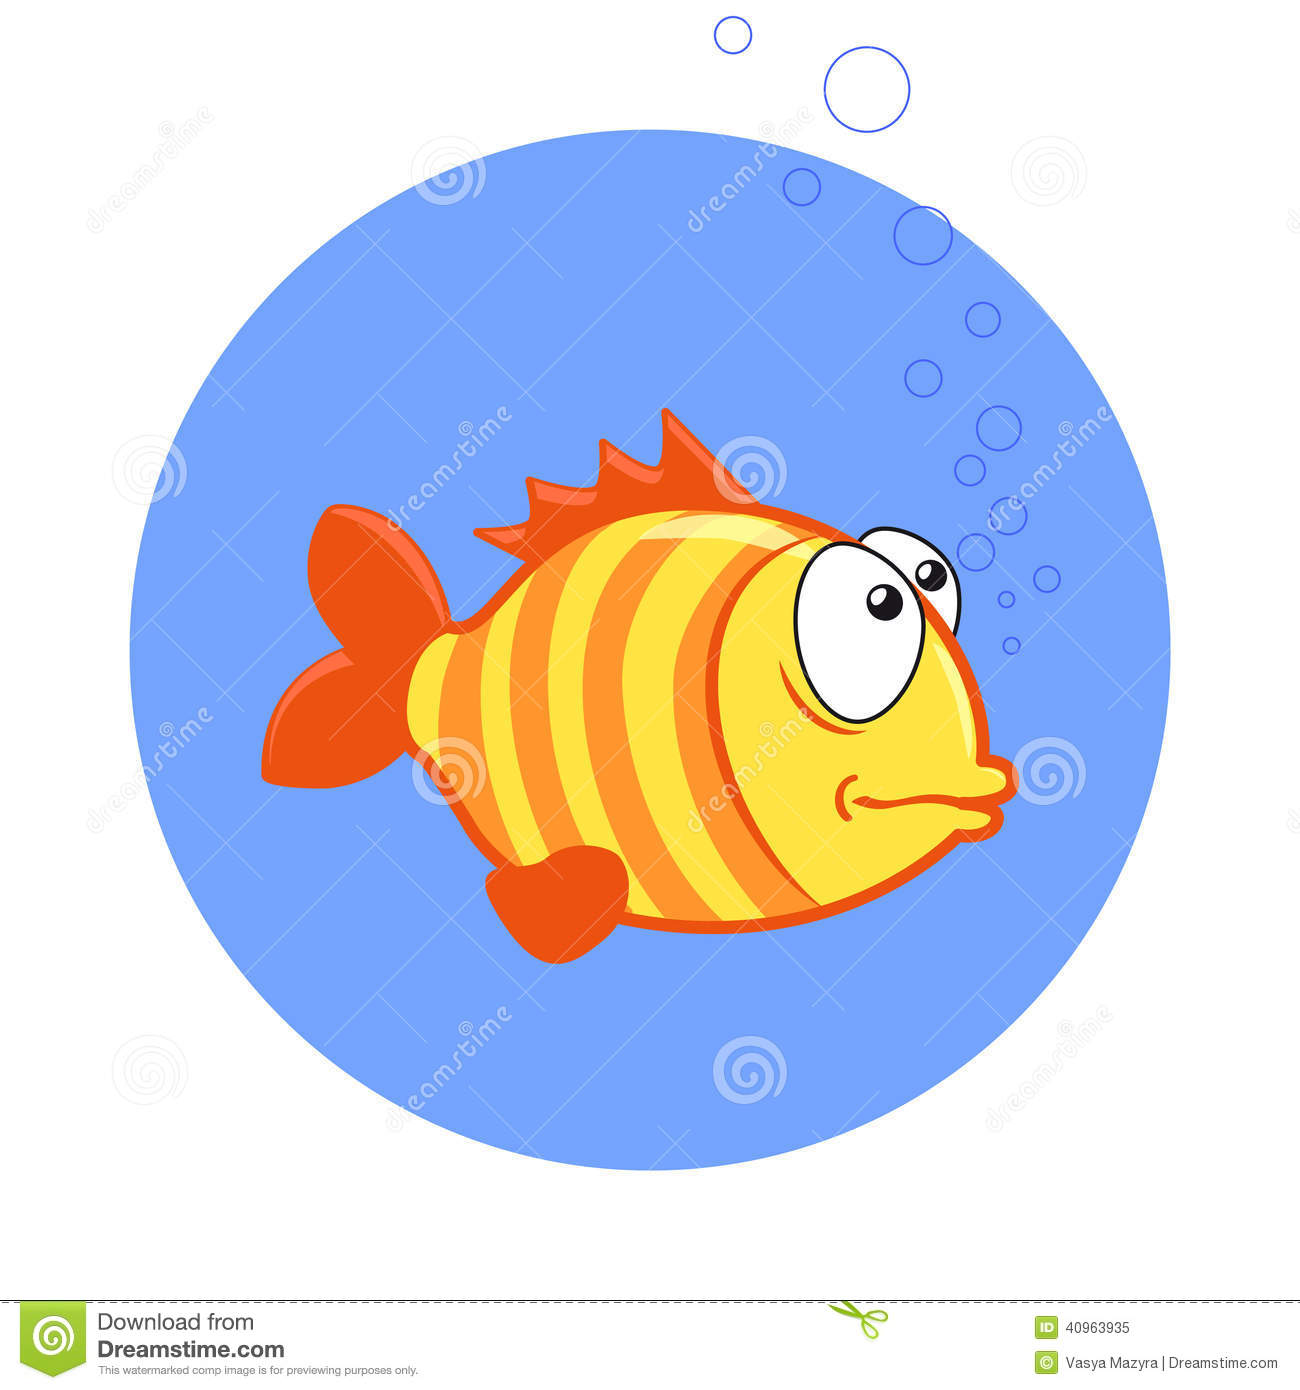 clip art of fish stock images image 18977694